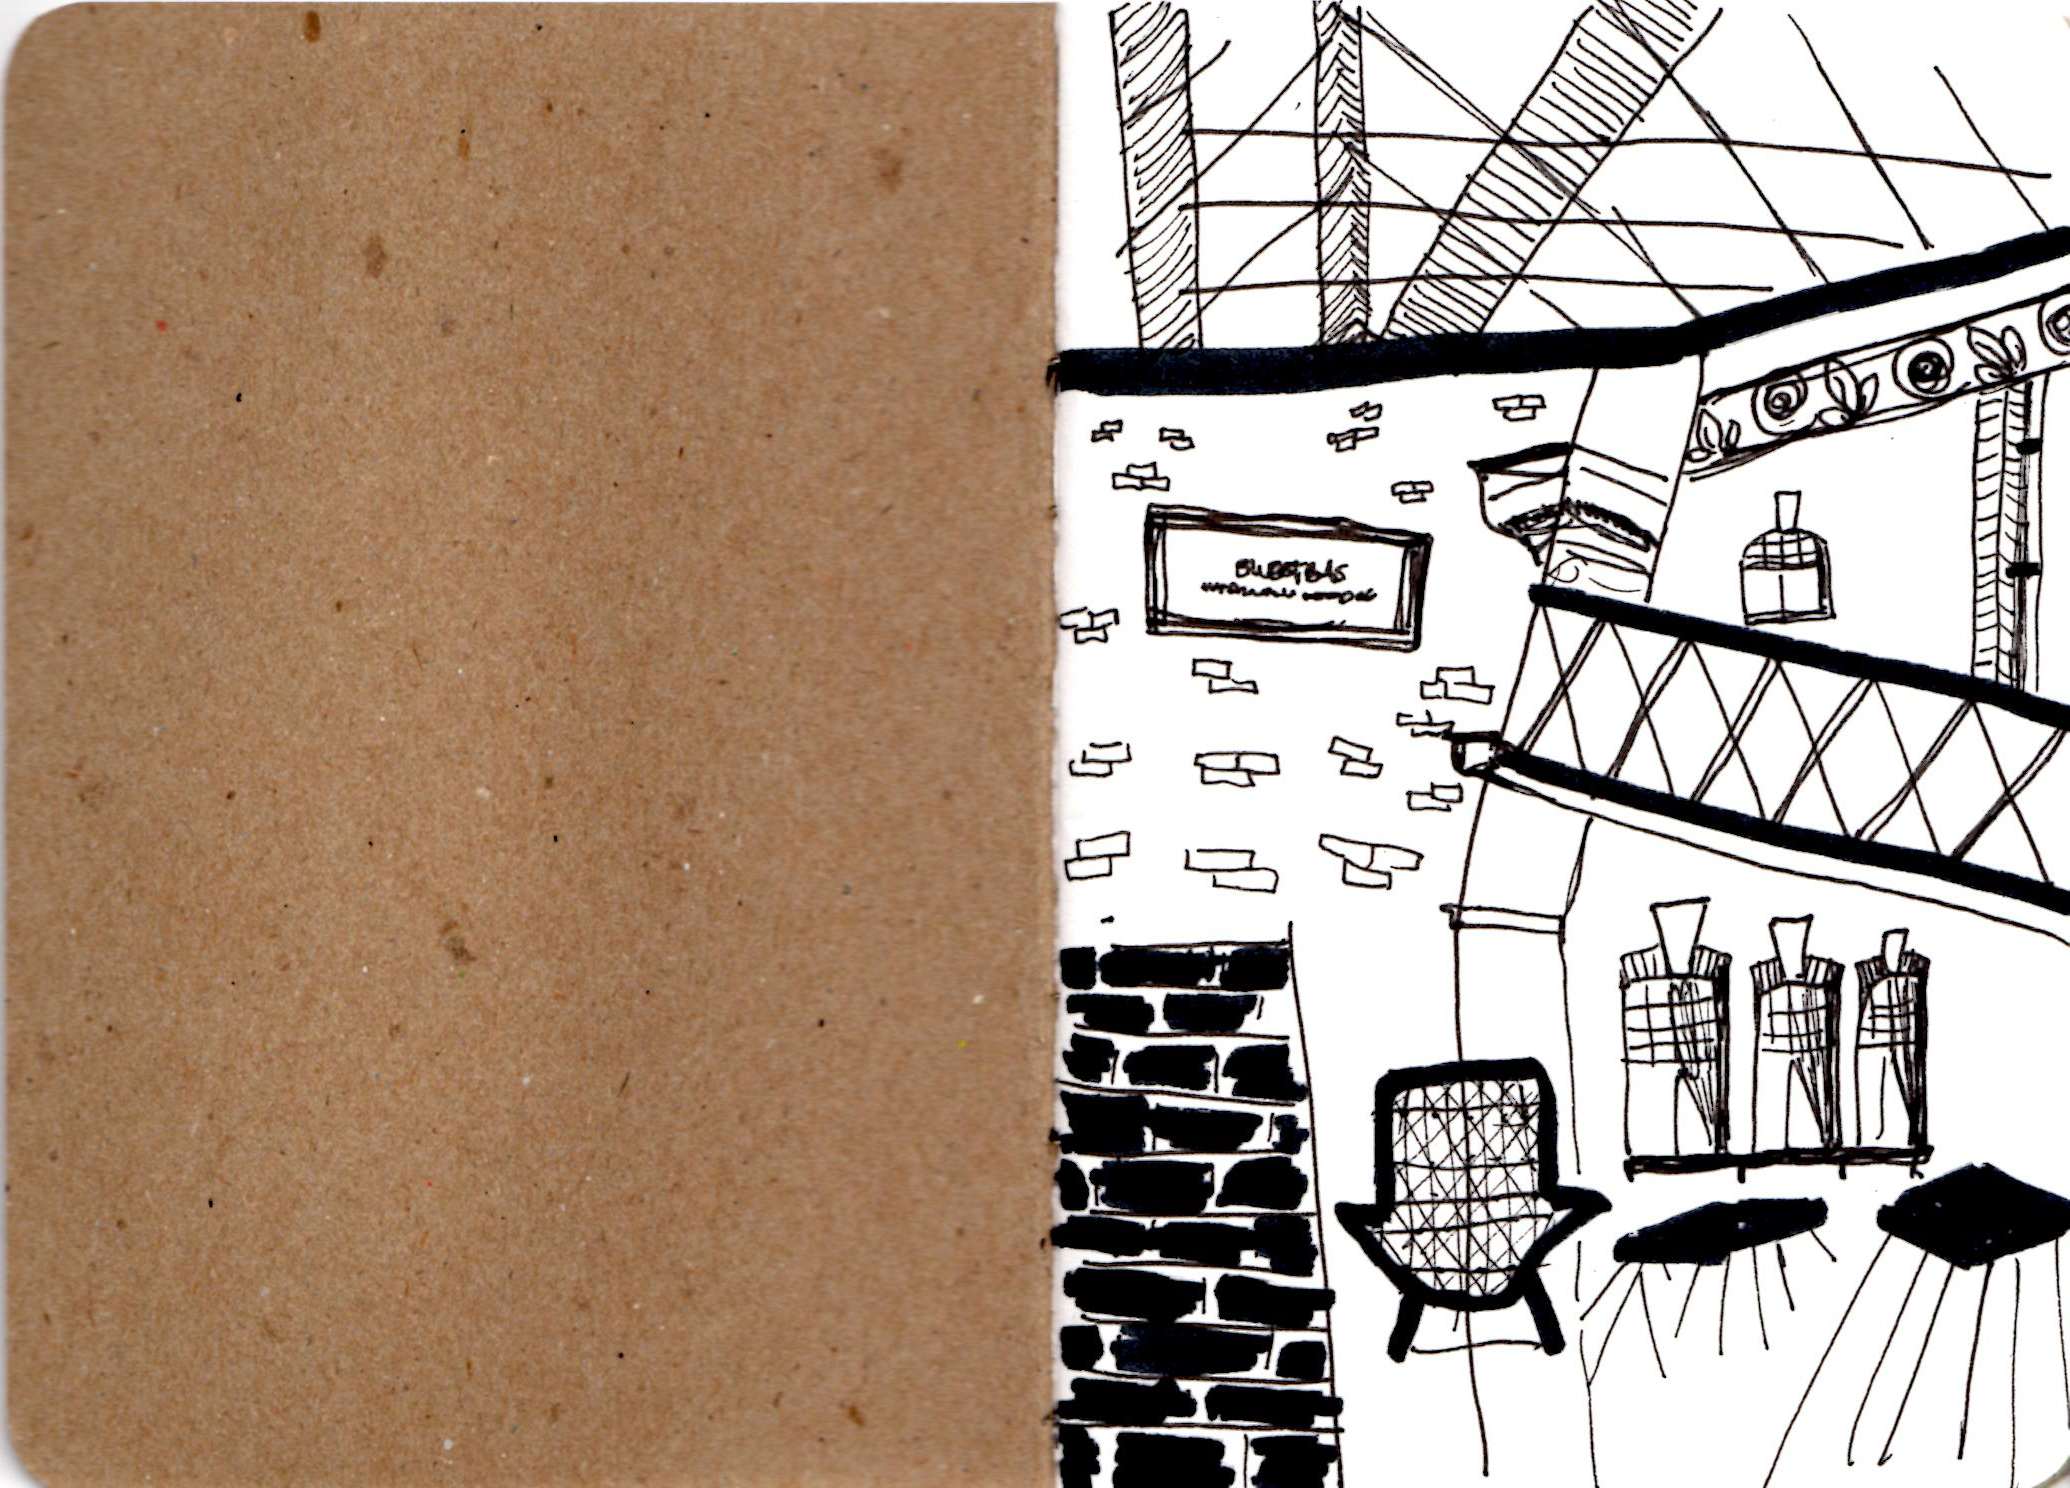 Spitalfields (first page of my new sketchbook)